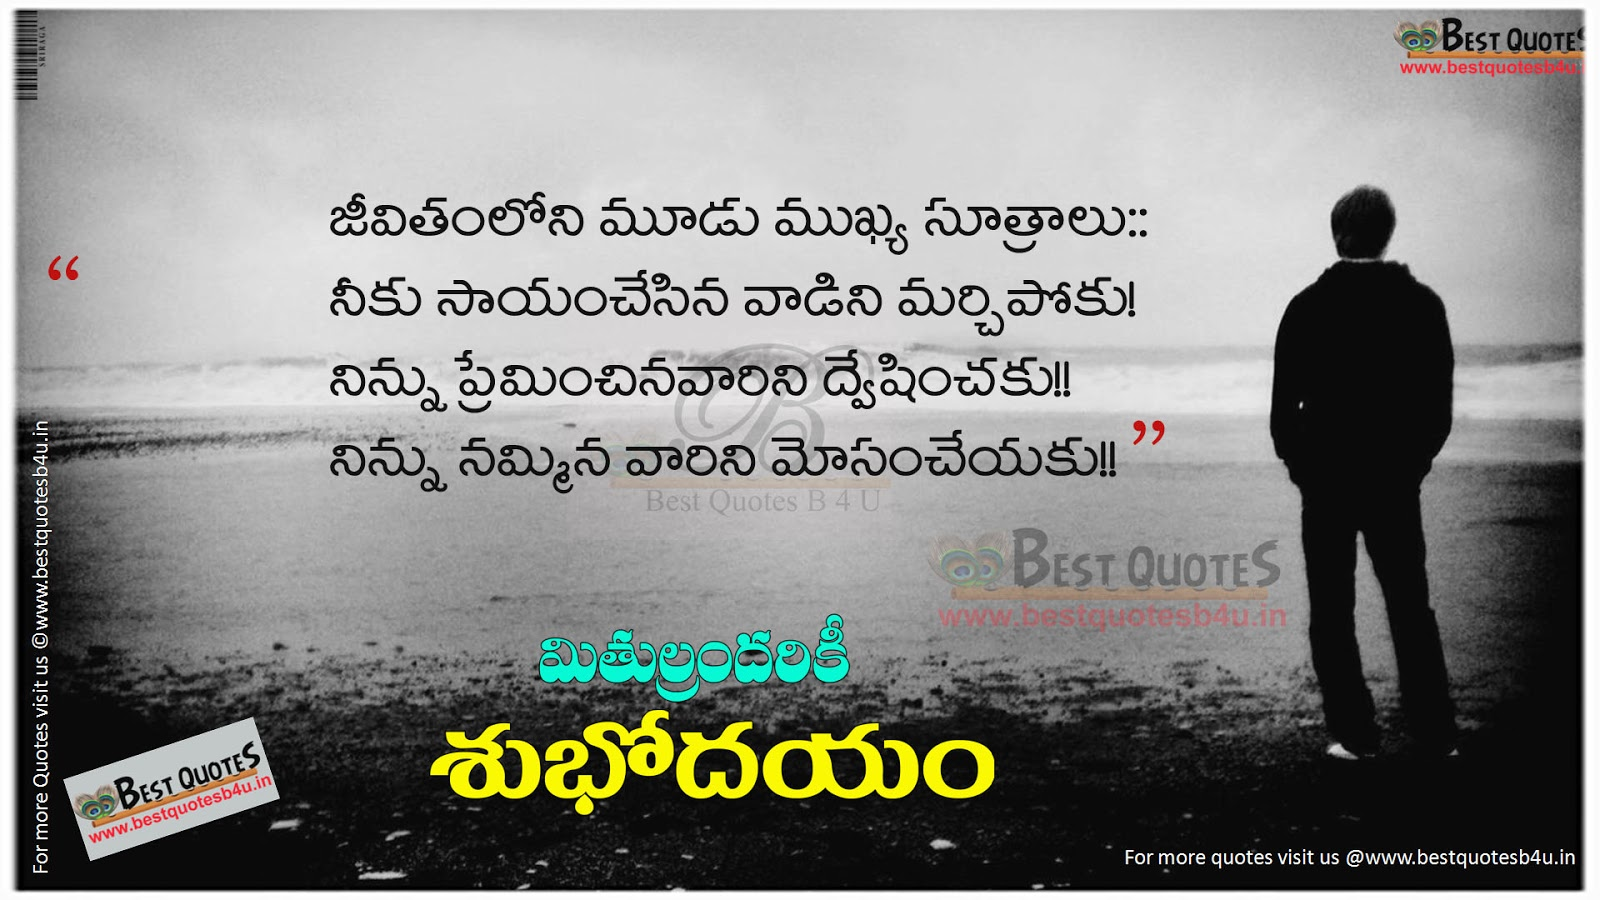 Best Quotes Telugu Images